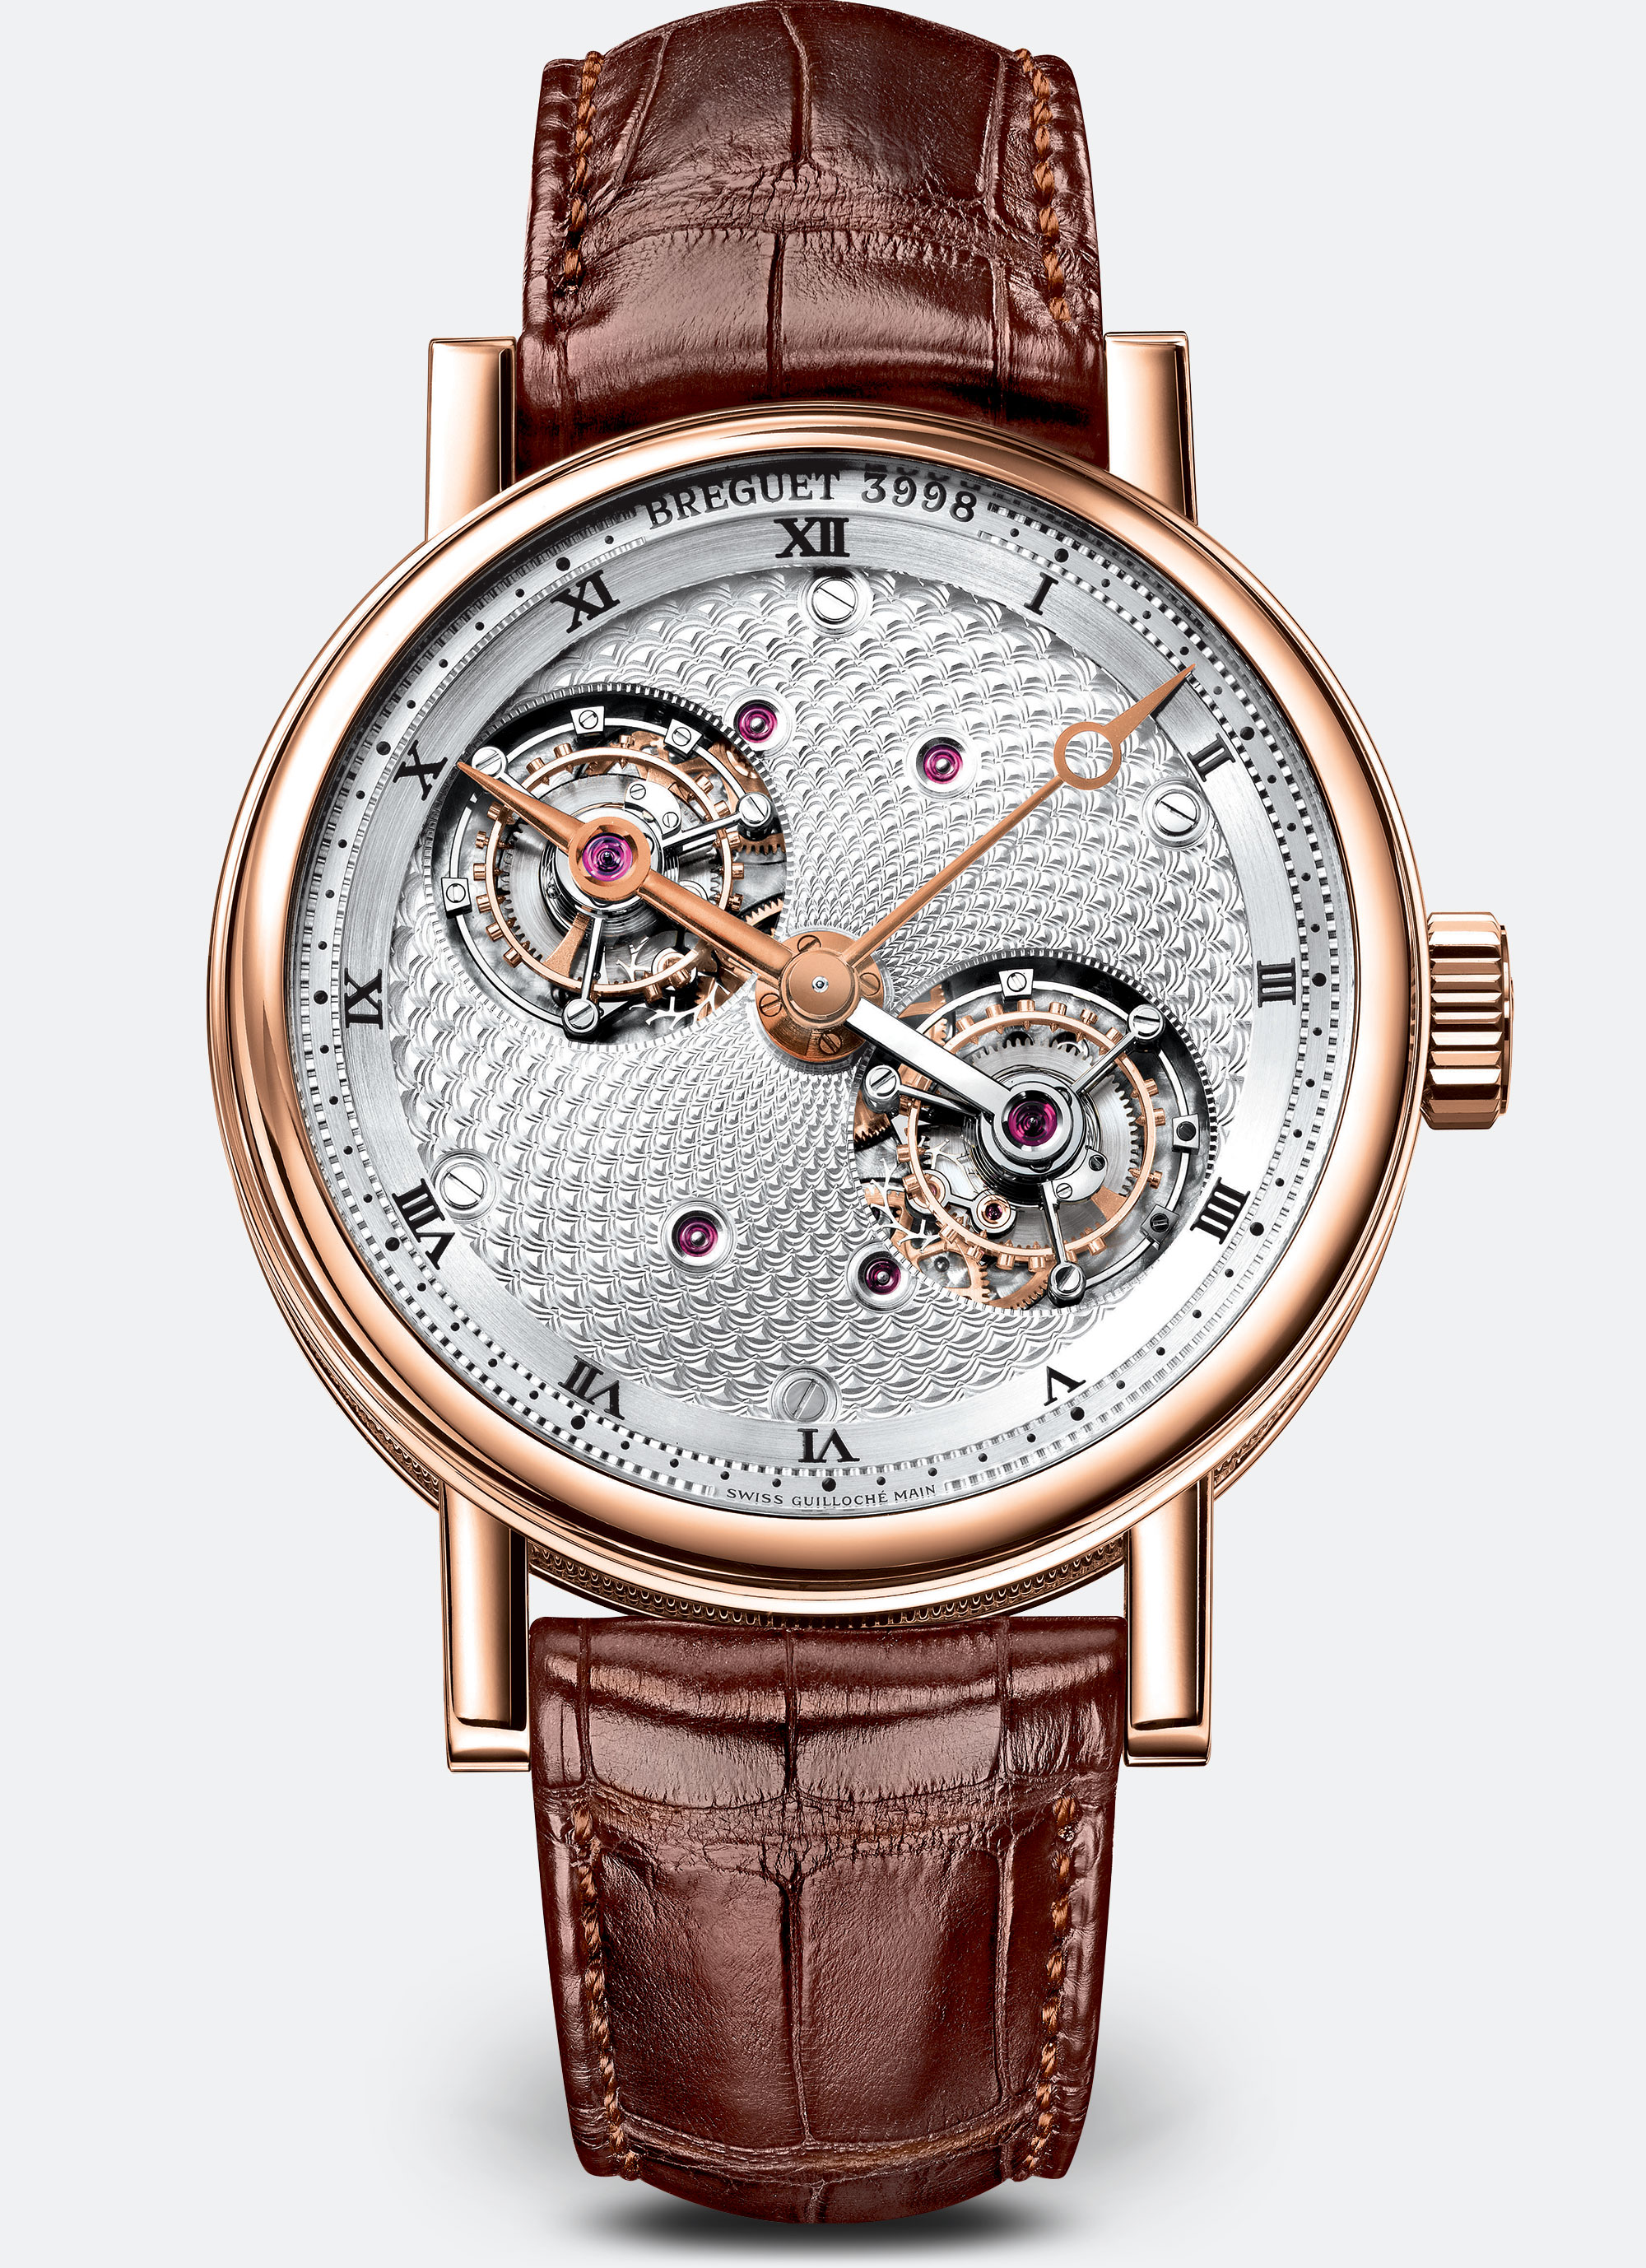 Double Tourbillon 5347 Breguet